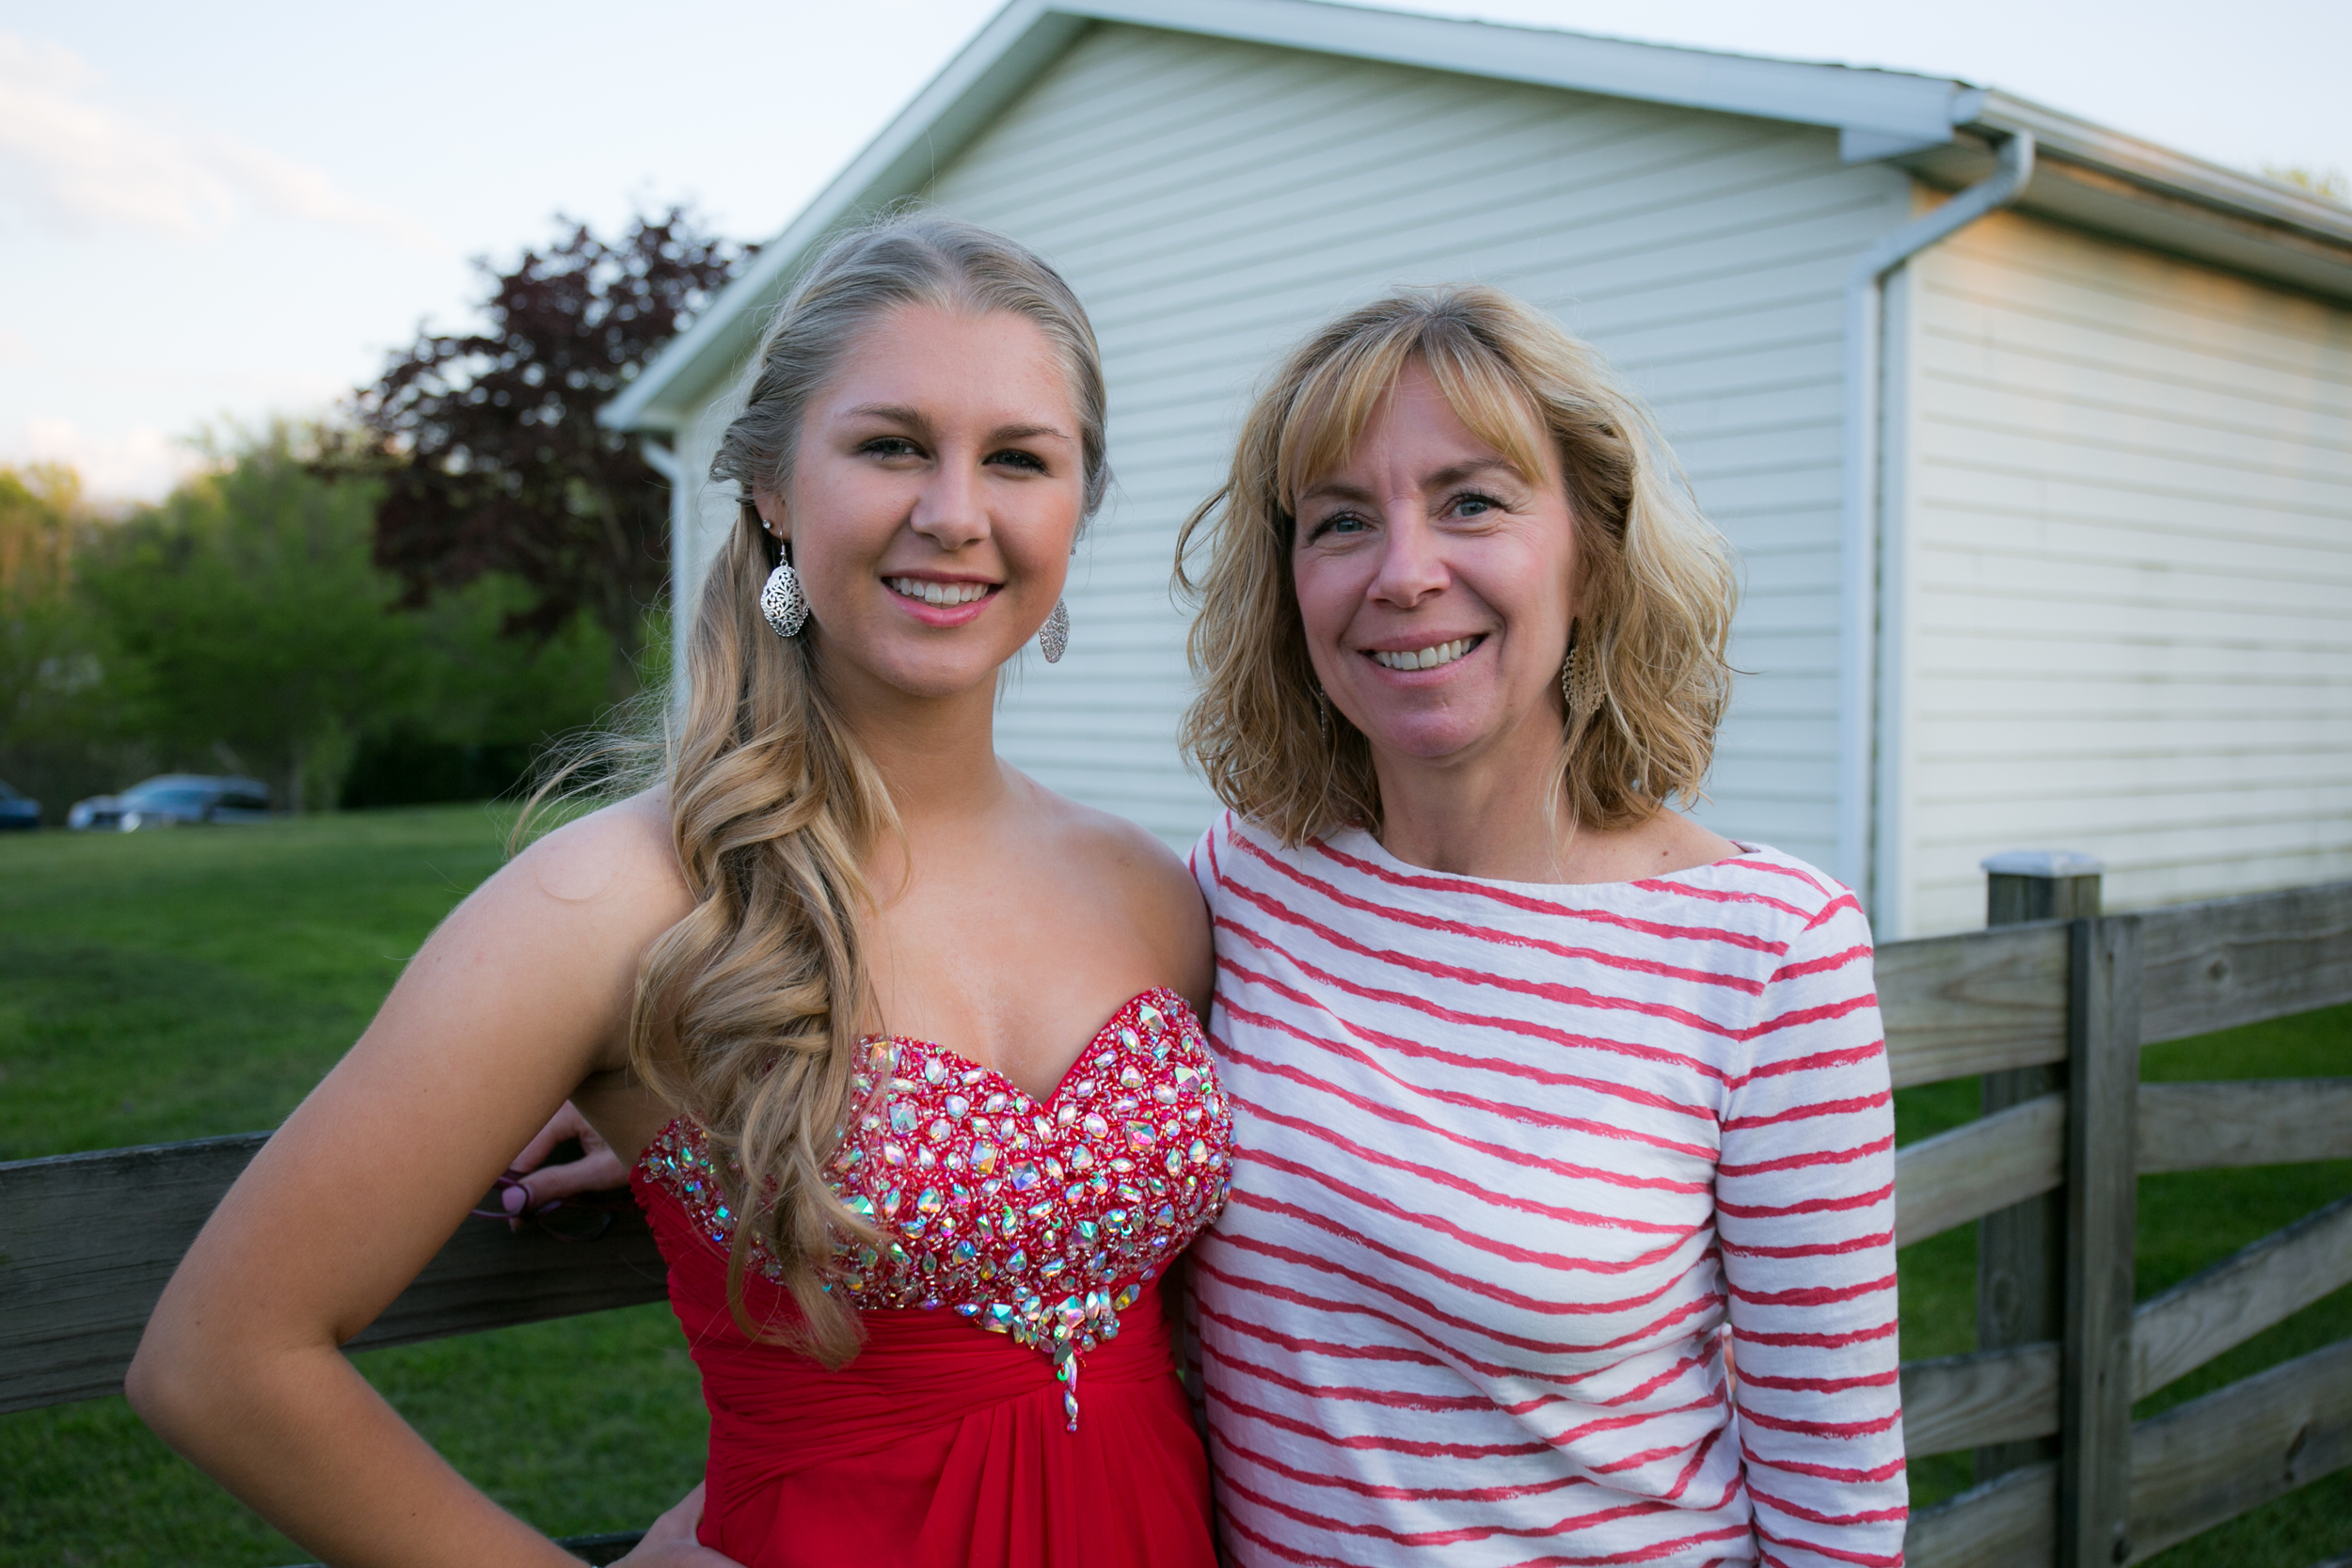 Mount-De-Sales-Pre-Prom-May-2014-146.jpg